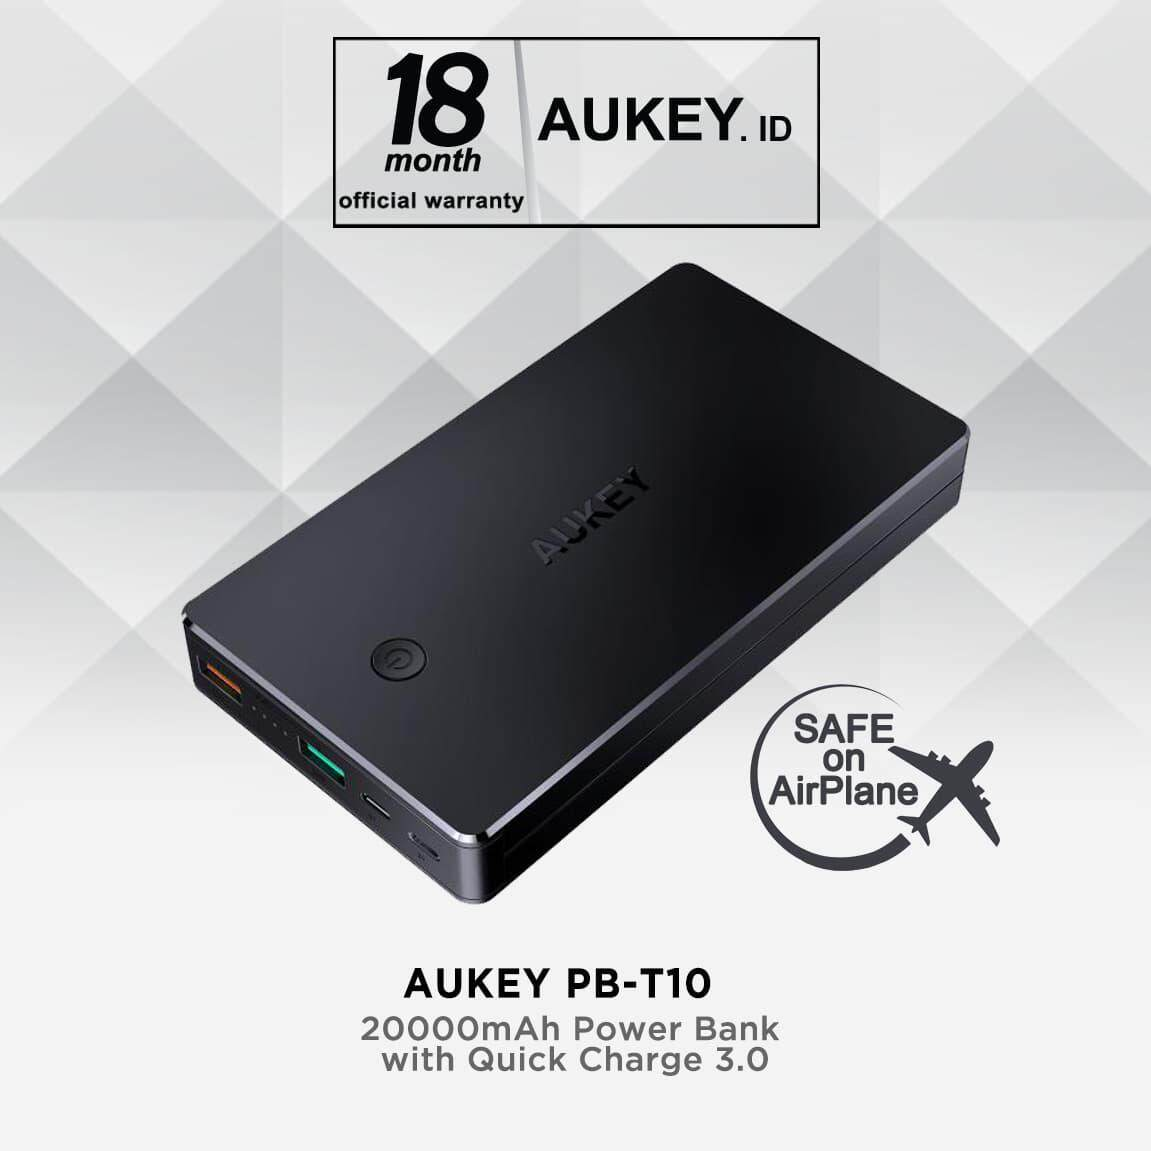 AUKEY PB-T10 V3 20000mAh Qualcomm Quick Charge 3.0 Powerbank support Lightning cable input (18 MONTHS WARRANTY)